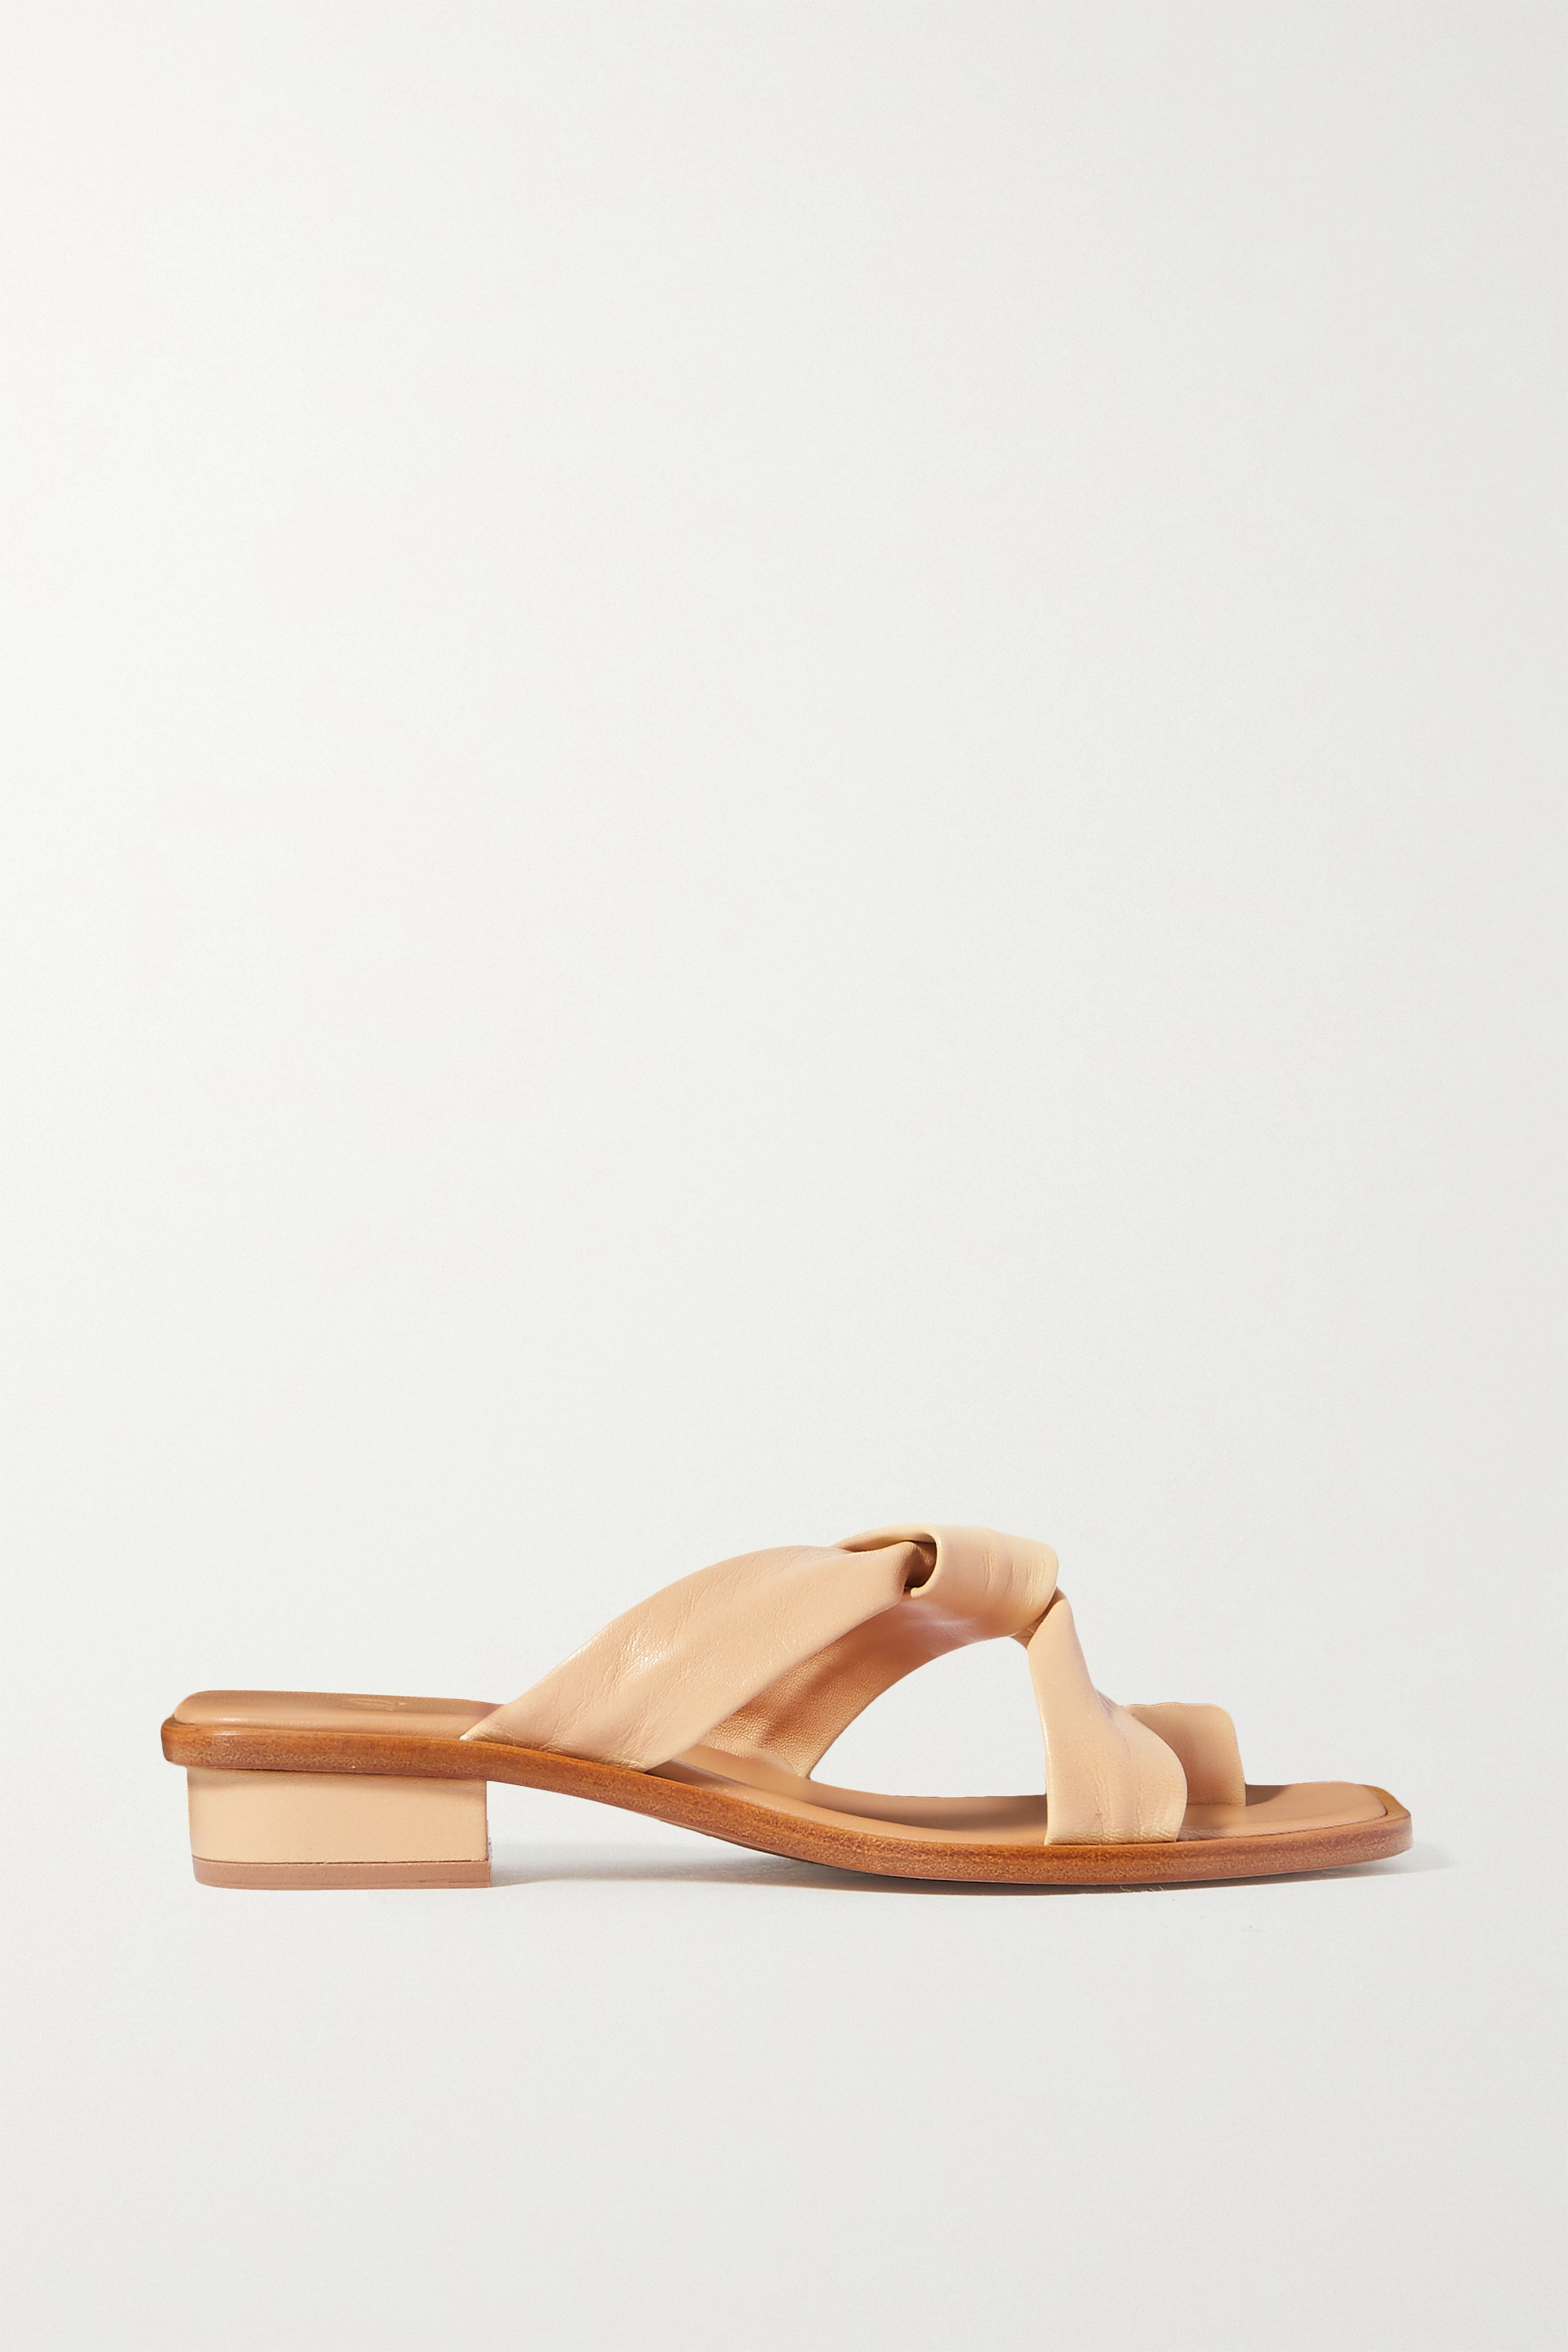 LOQ Pau knotted leather sandals